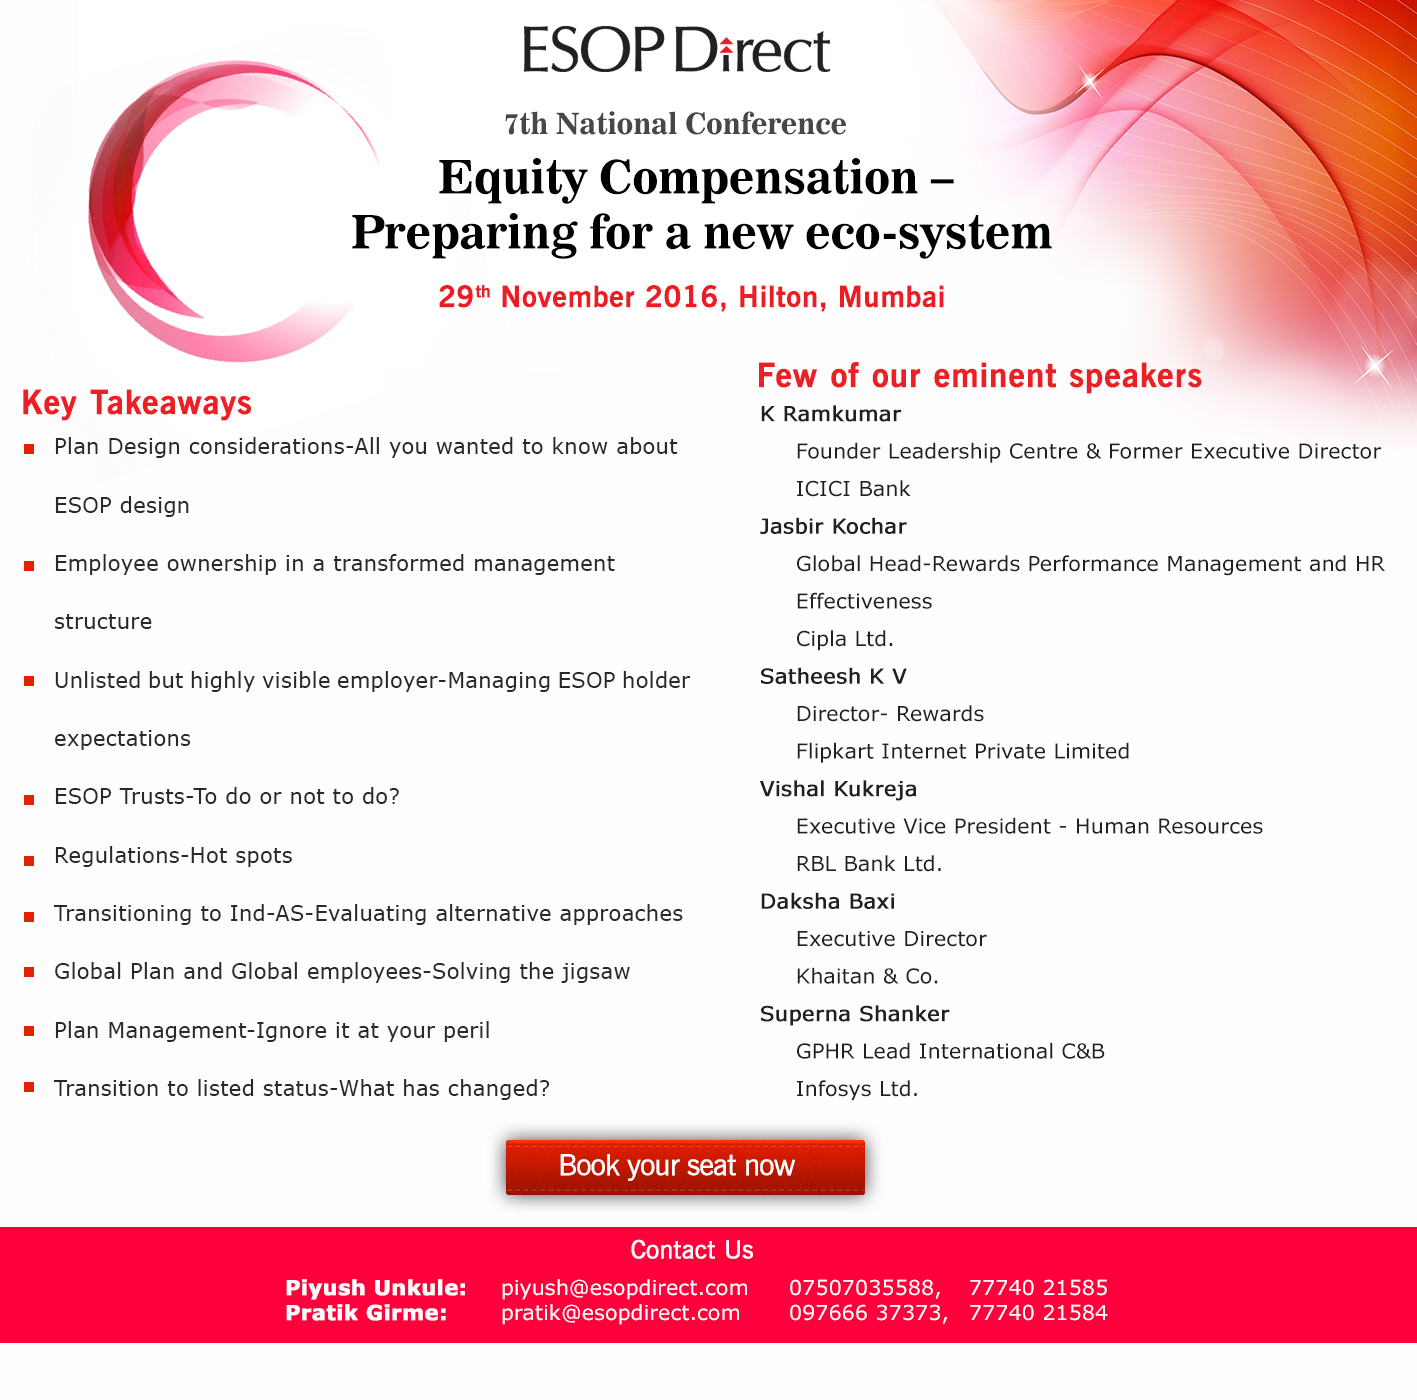 http://www.esopdirect.com/conference2016/